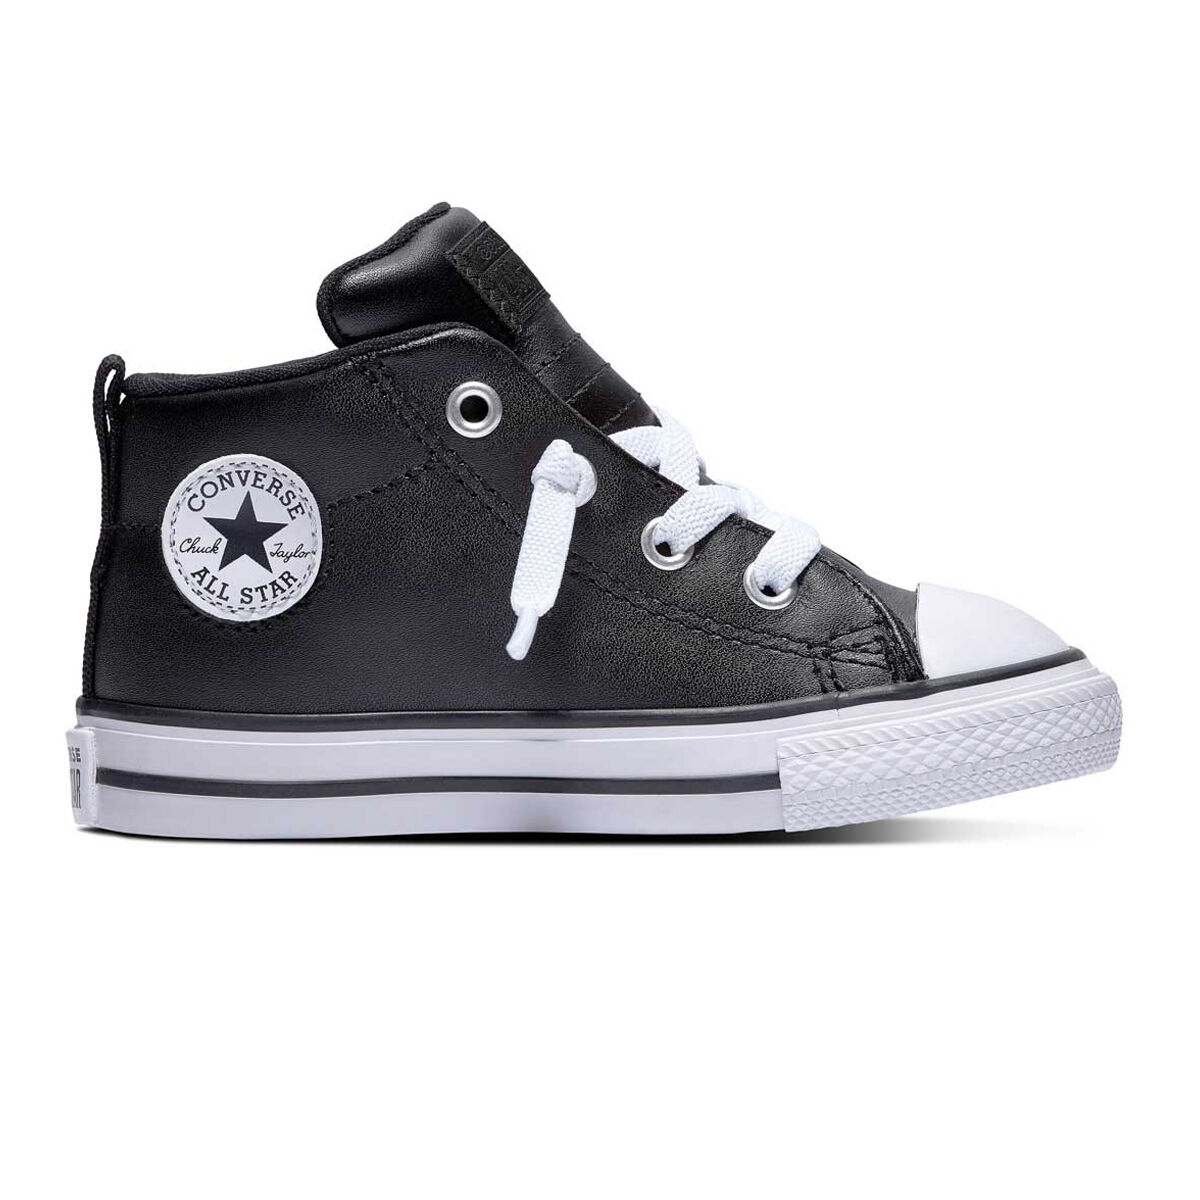 Converse Chuck Taylor All Star Street Toddlers Shoes